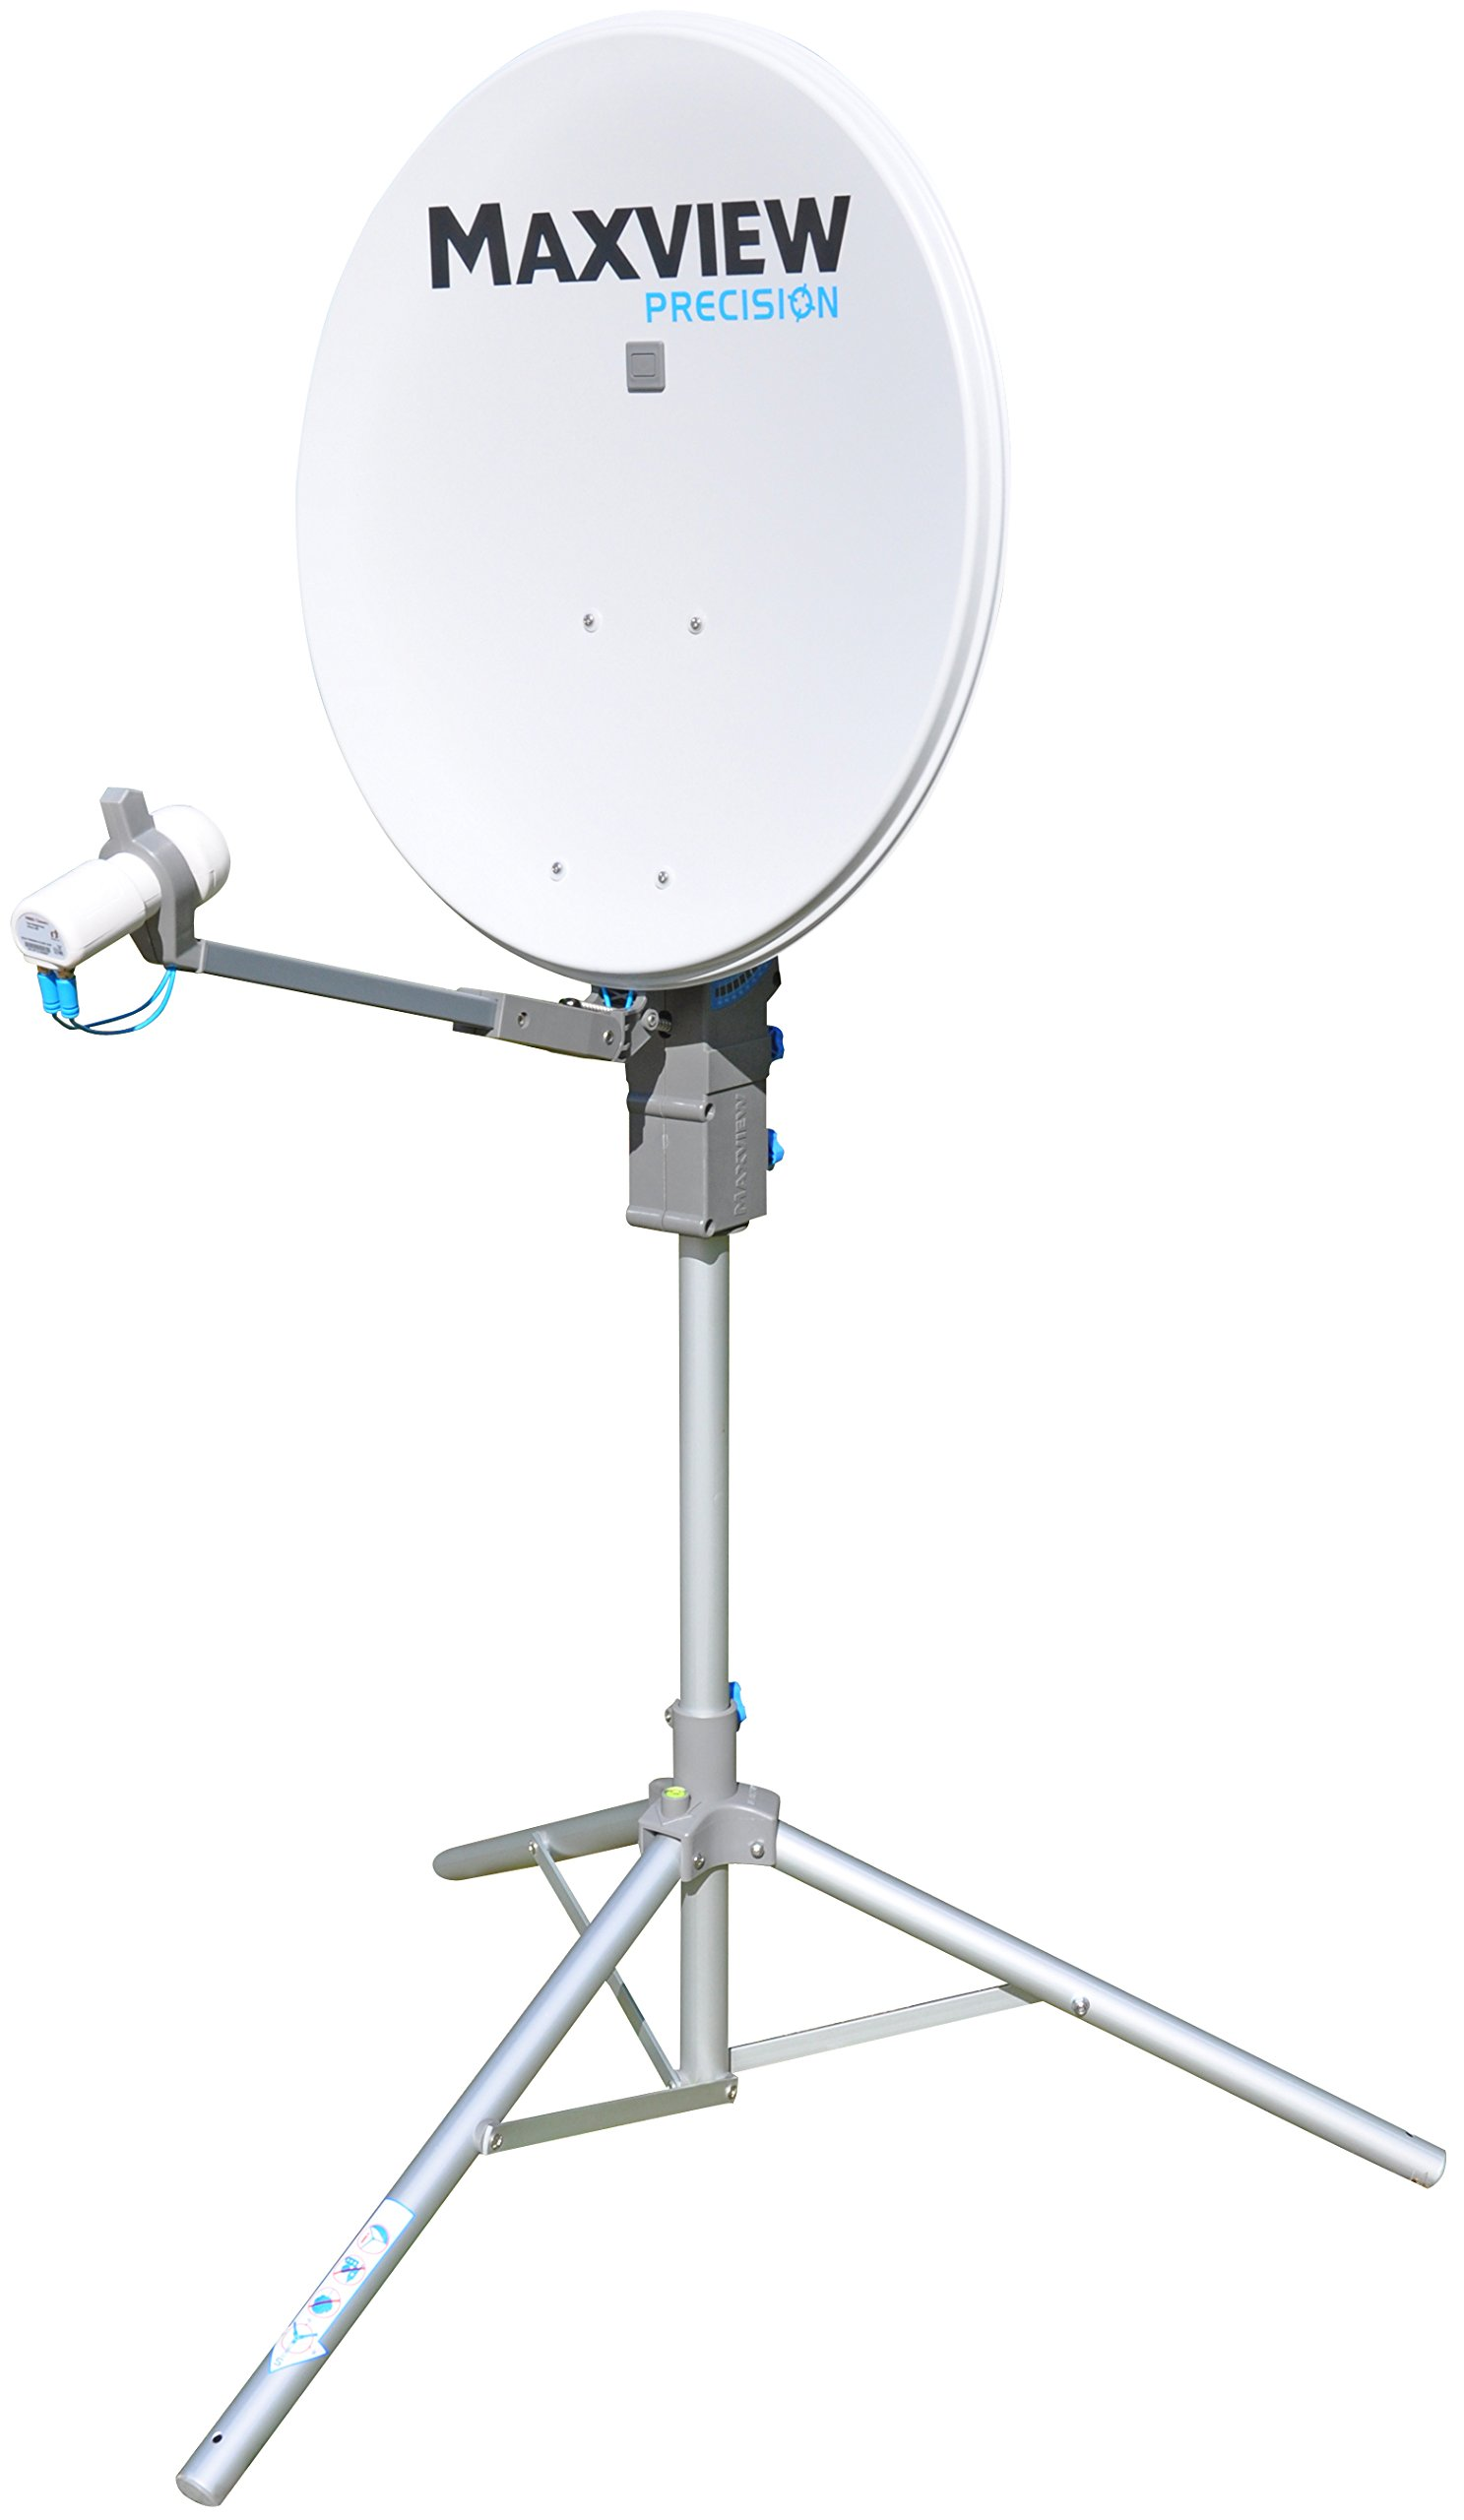 Maxview MXL01255TWIN Precision Satellite Kit with Twin LNB, 55 cm by Maxview